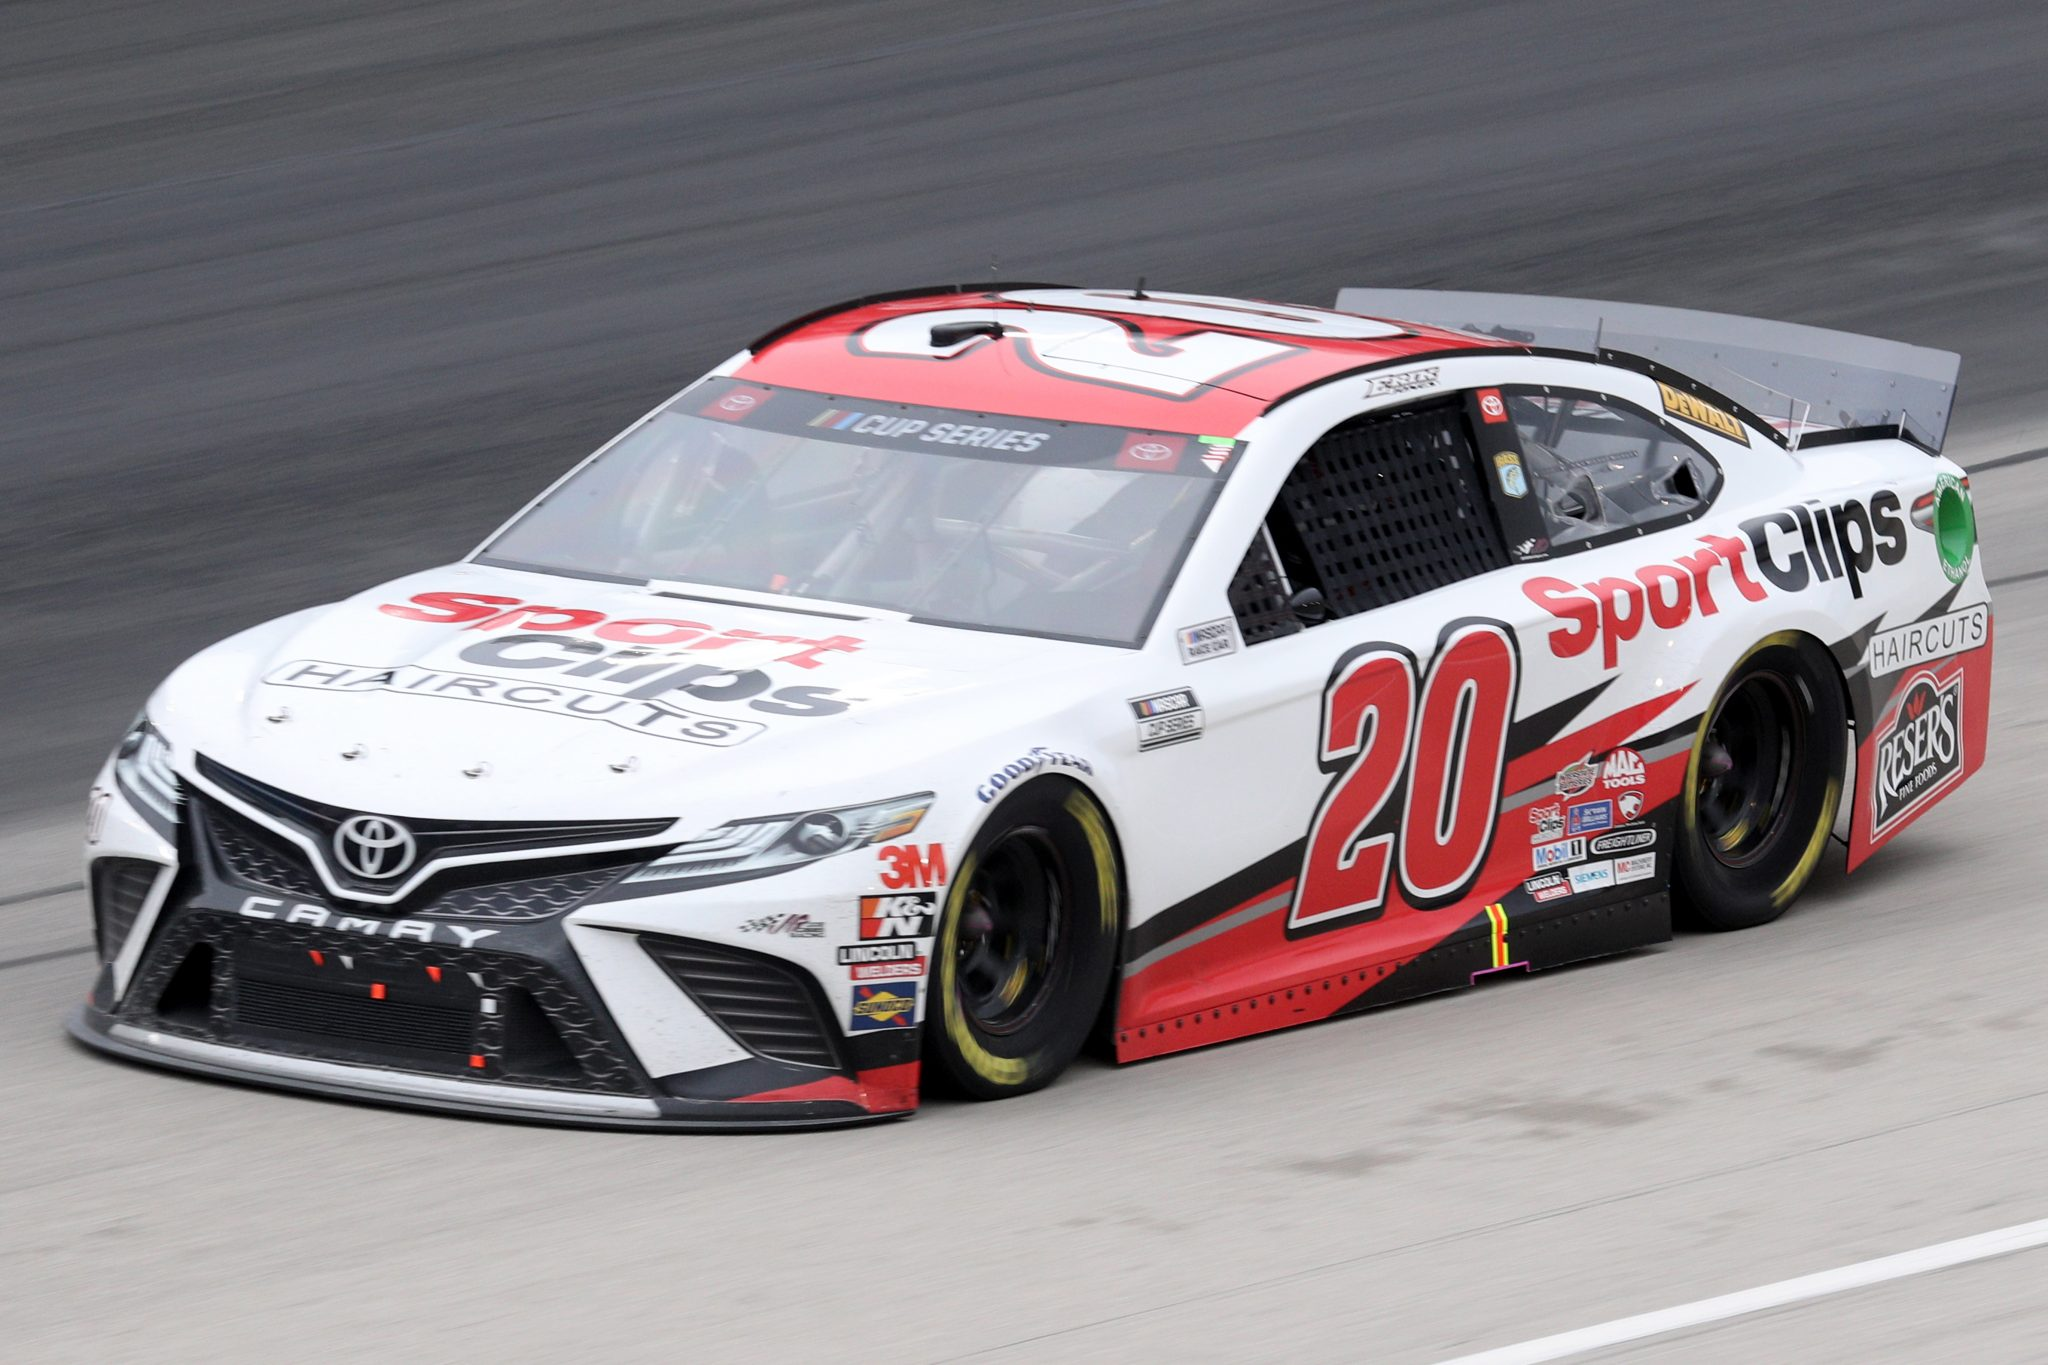 FORT WORTH, TEXAS - OCTOBER 28: Erik Jones, driver of the #20 Sport Clips Toyota, drives during the NASCAR Cup Series Autotrader EchoPark Automotive 500 at Texas Motor Speedway on October 28, 2020 in Fort Worth, Texas. (Photo by Chris Graythen/Getty Images)   Getty Images